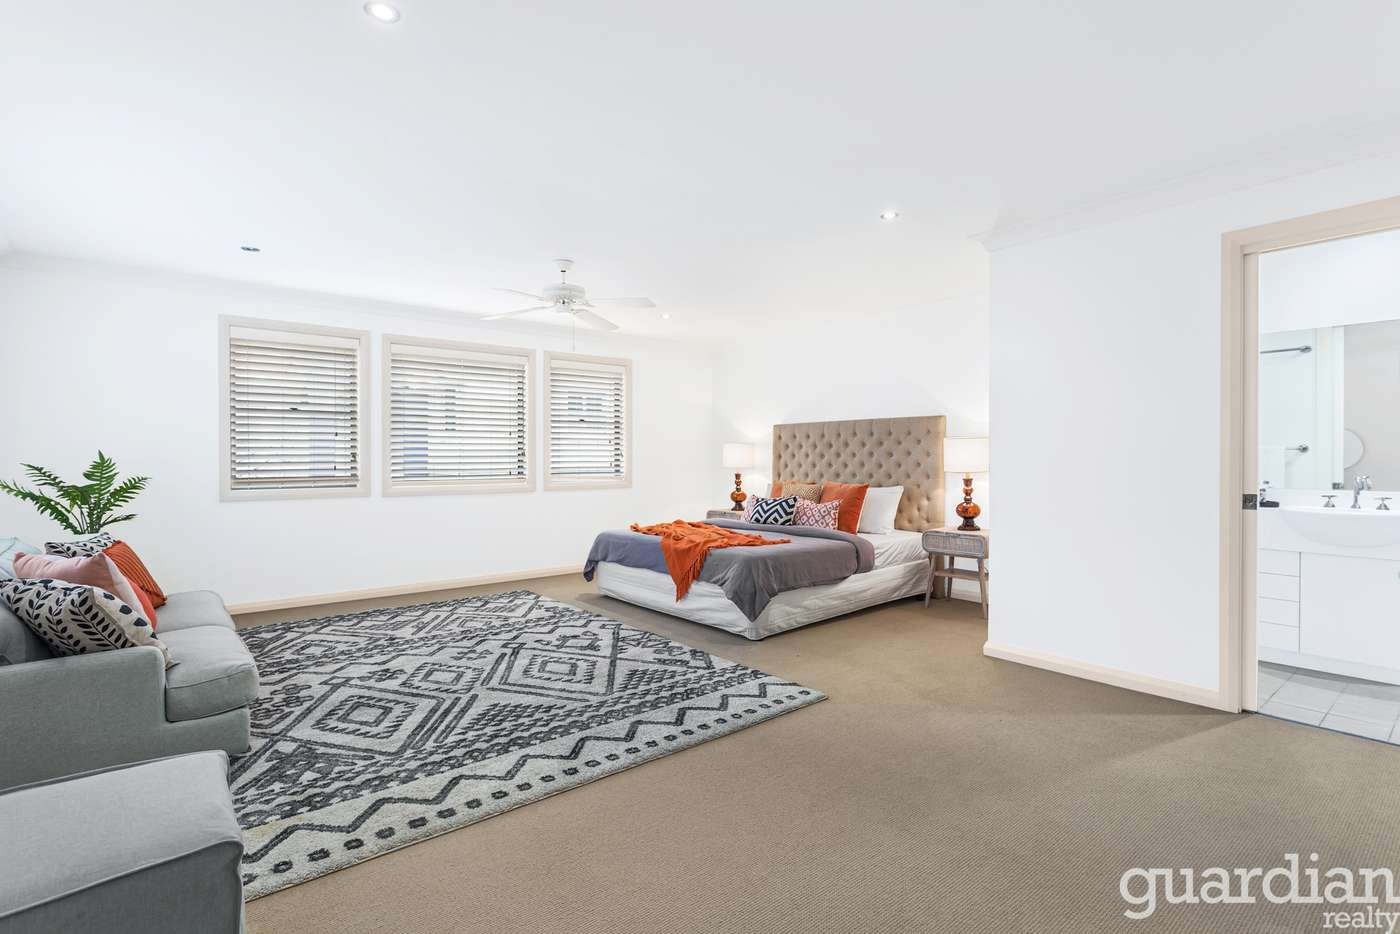 Fifth view of Homely house listing, 6 St Simon Place, Castle Hill NSW 2154